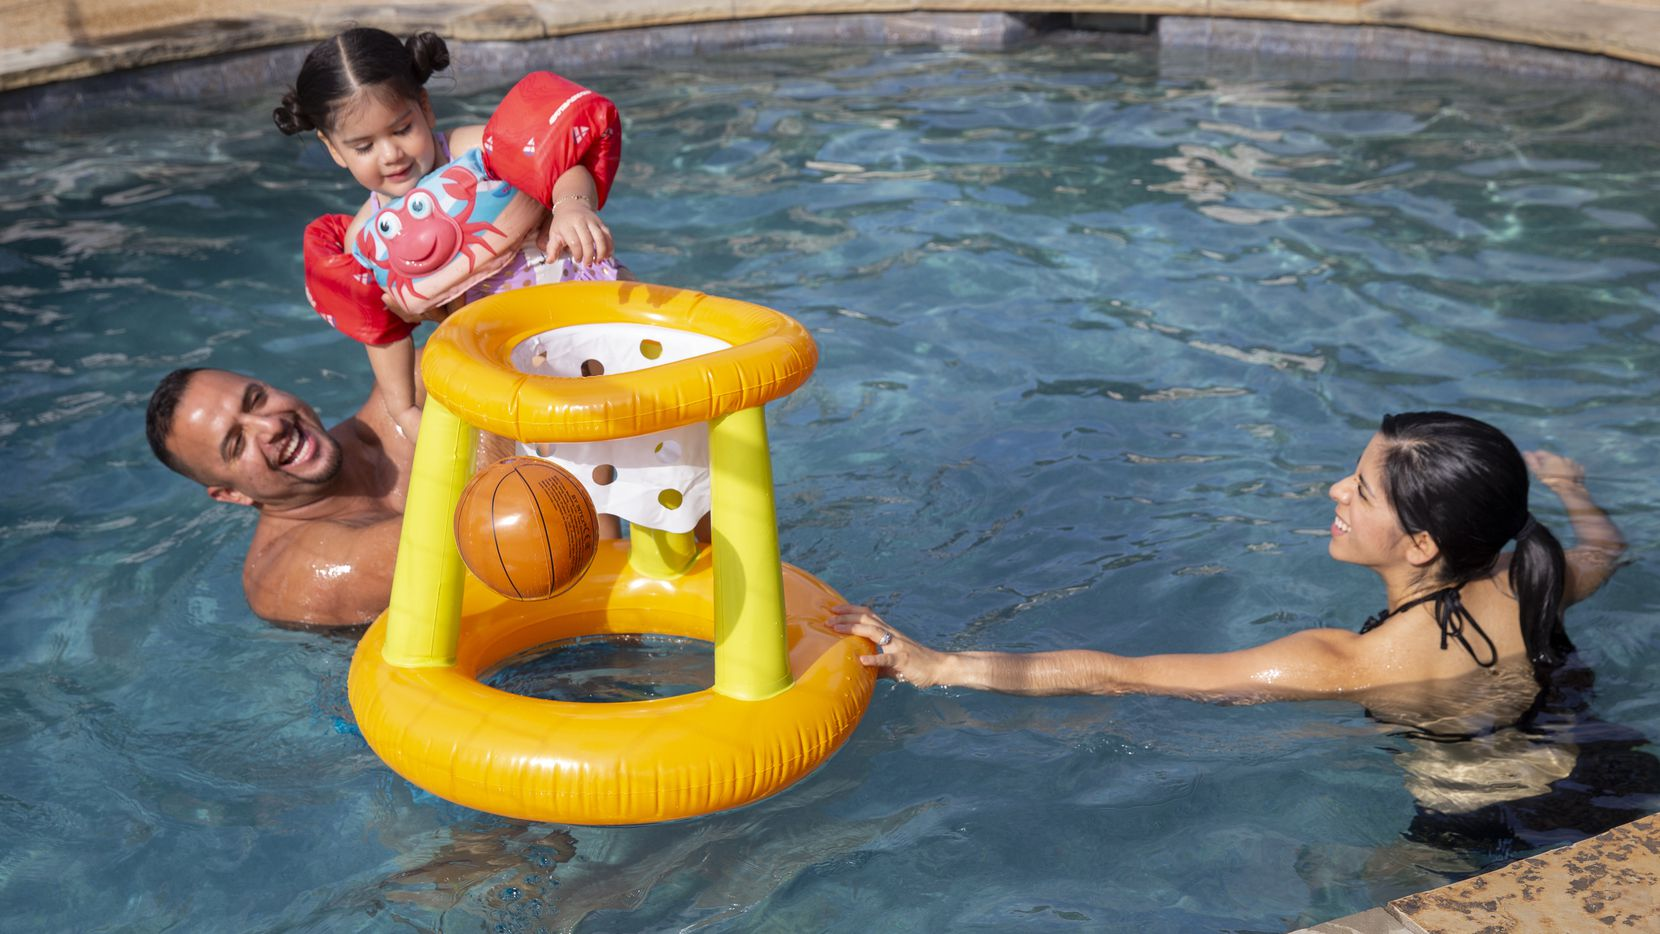 Tony Banda (left) holds his niece Giselle Mendoza, 2, as her mom Imelda Mendoza watches in a pool they rented using the Swimply app on July 26, 2020 in Waxahachie. Their sister Adriana Banda said she reserved the pool since her family wasn't able to have summer fun during quarantine.